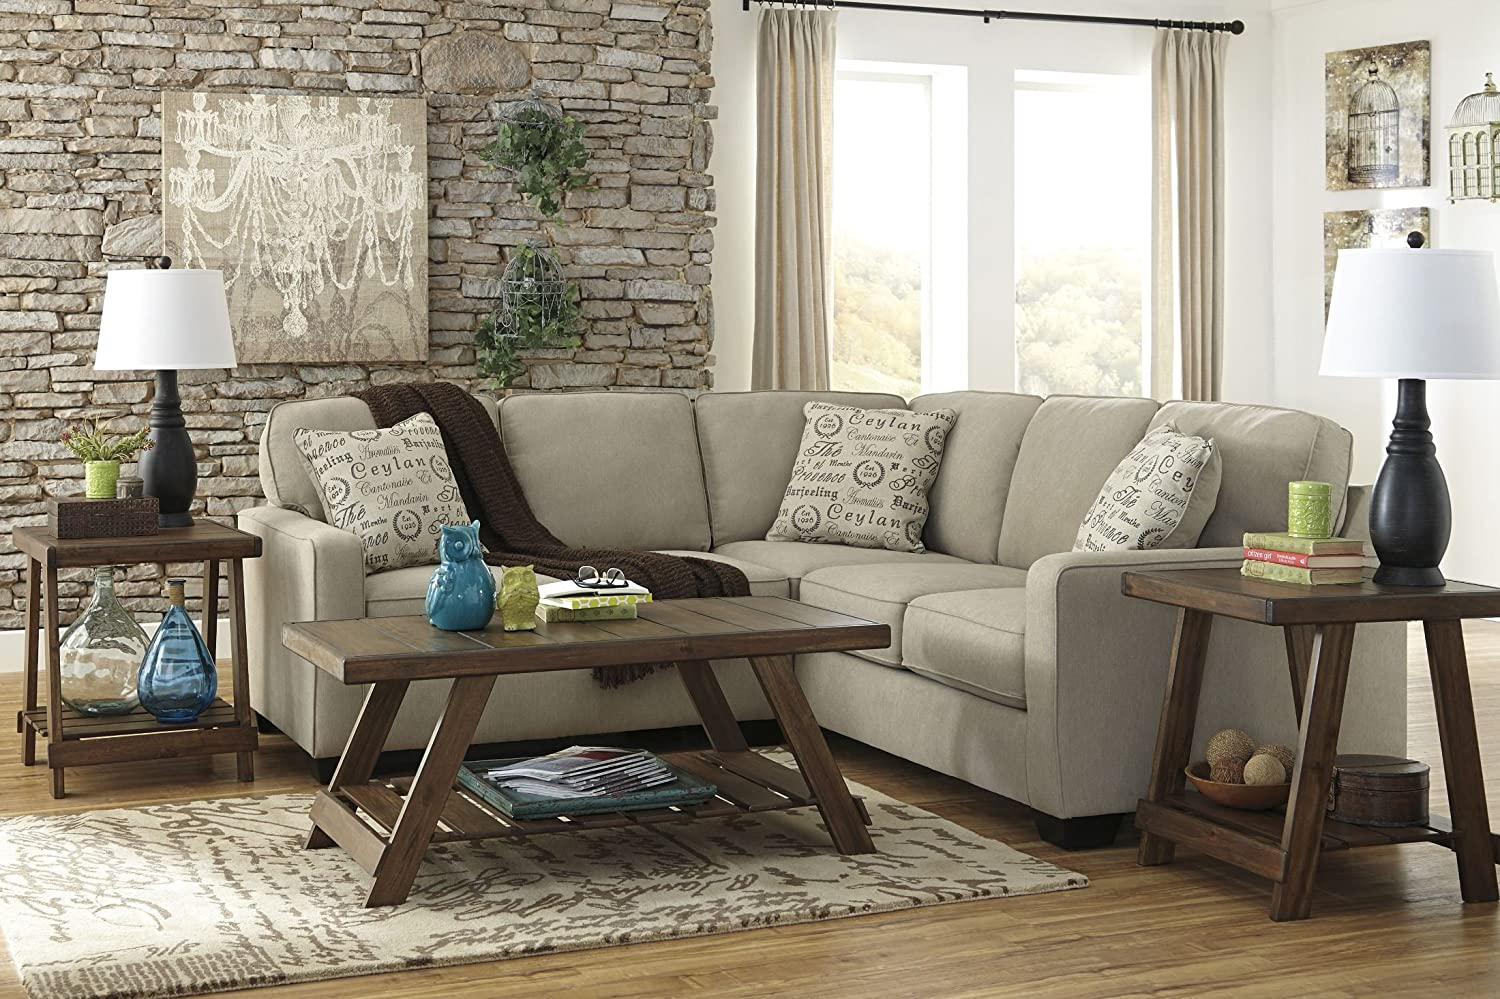 Ashley Alenya 16600-55-67 2PC Sectional Sofa with Left Arm Facing Loveseat Right Arm Facing Sofa Pillows with Print